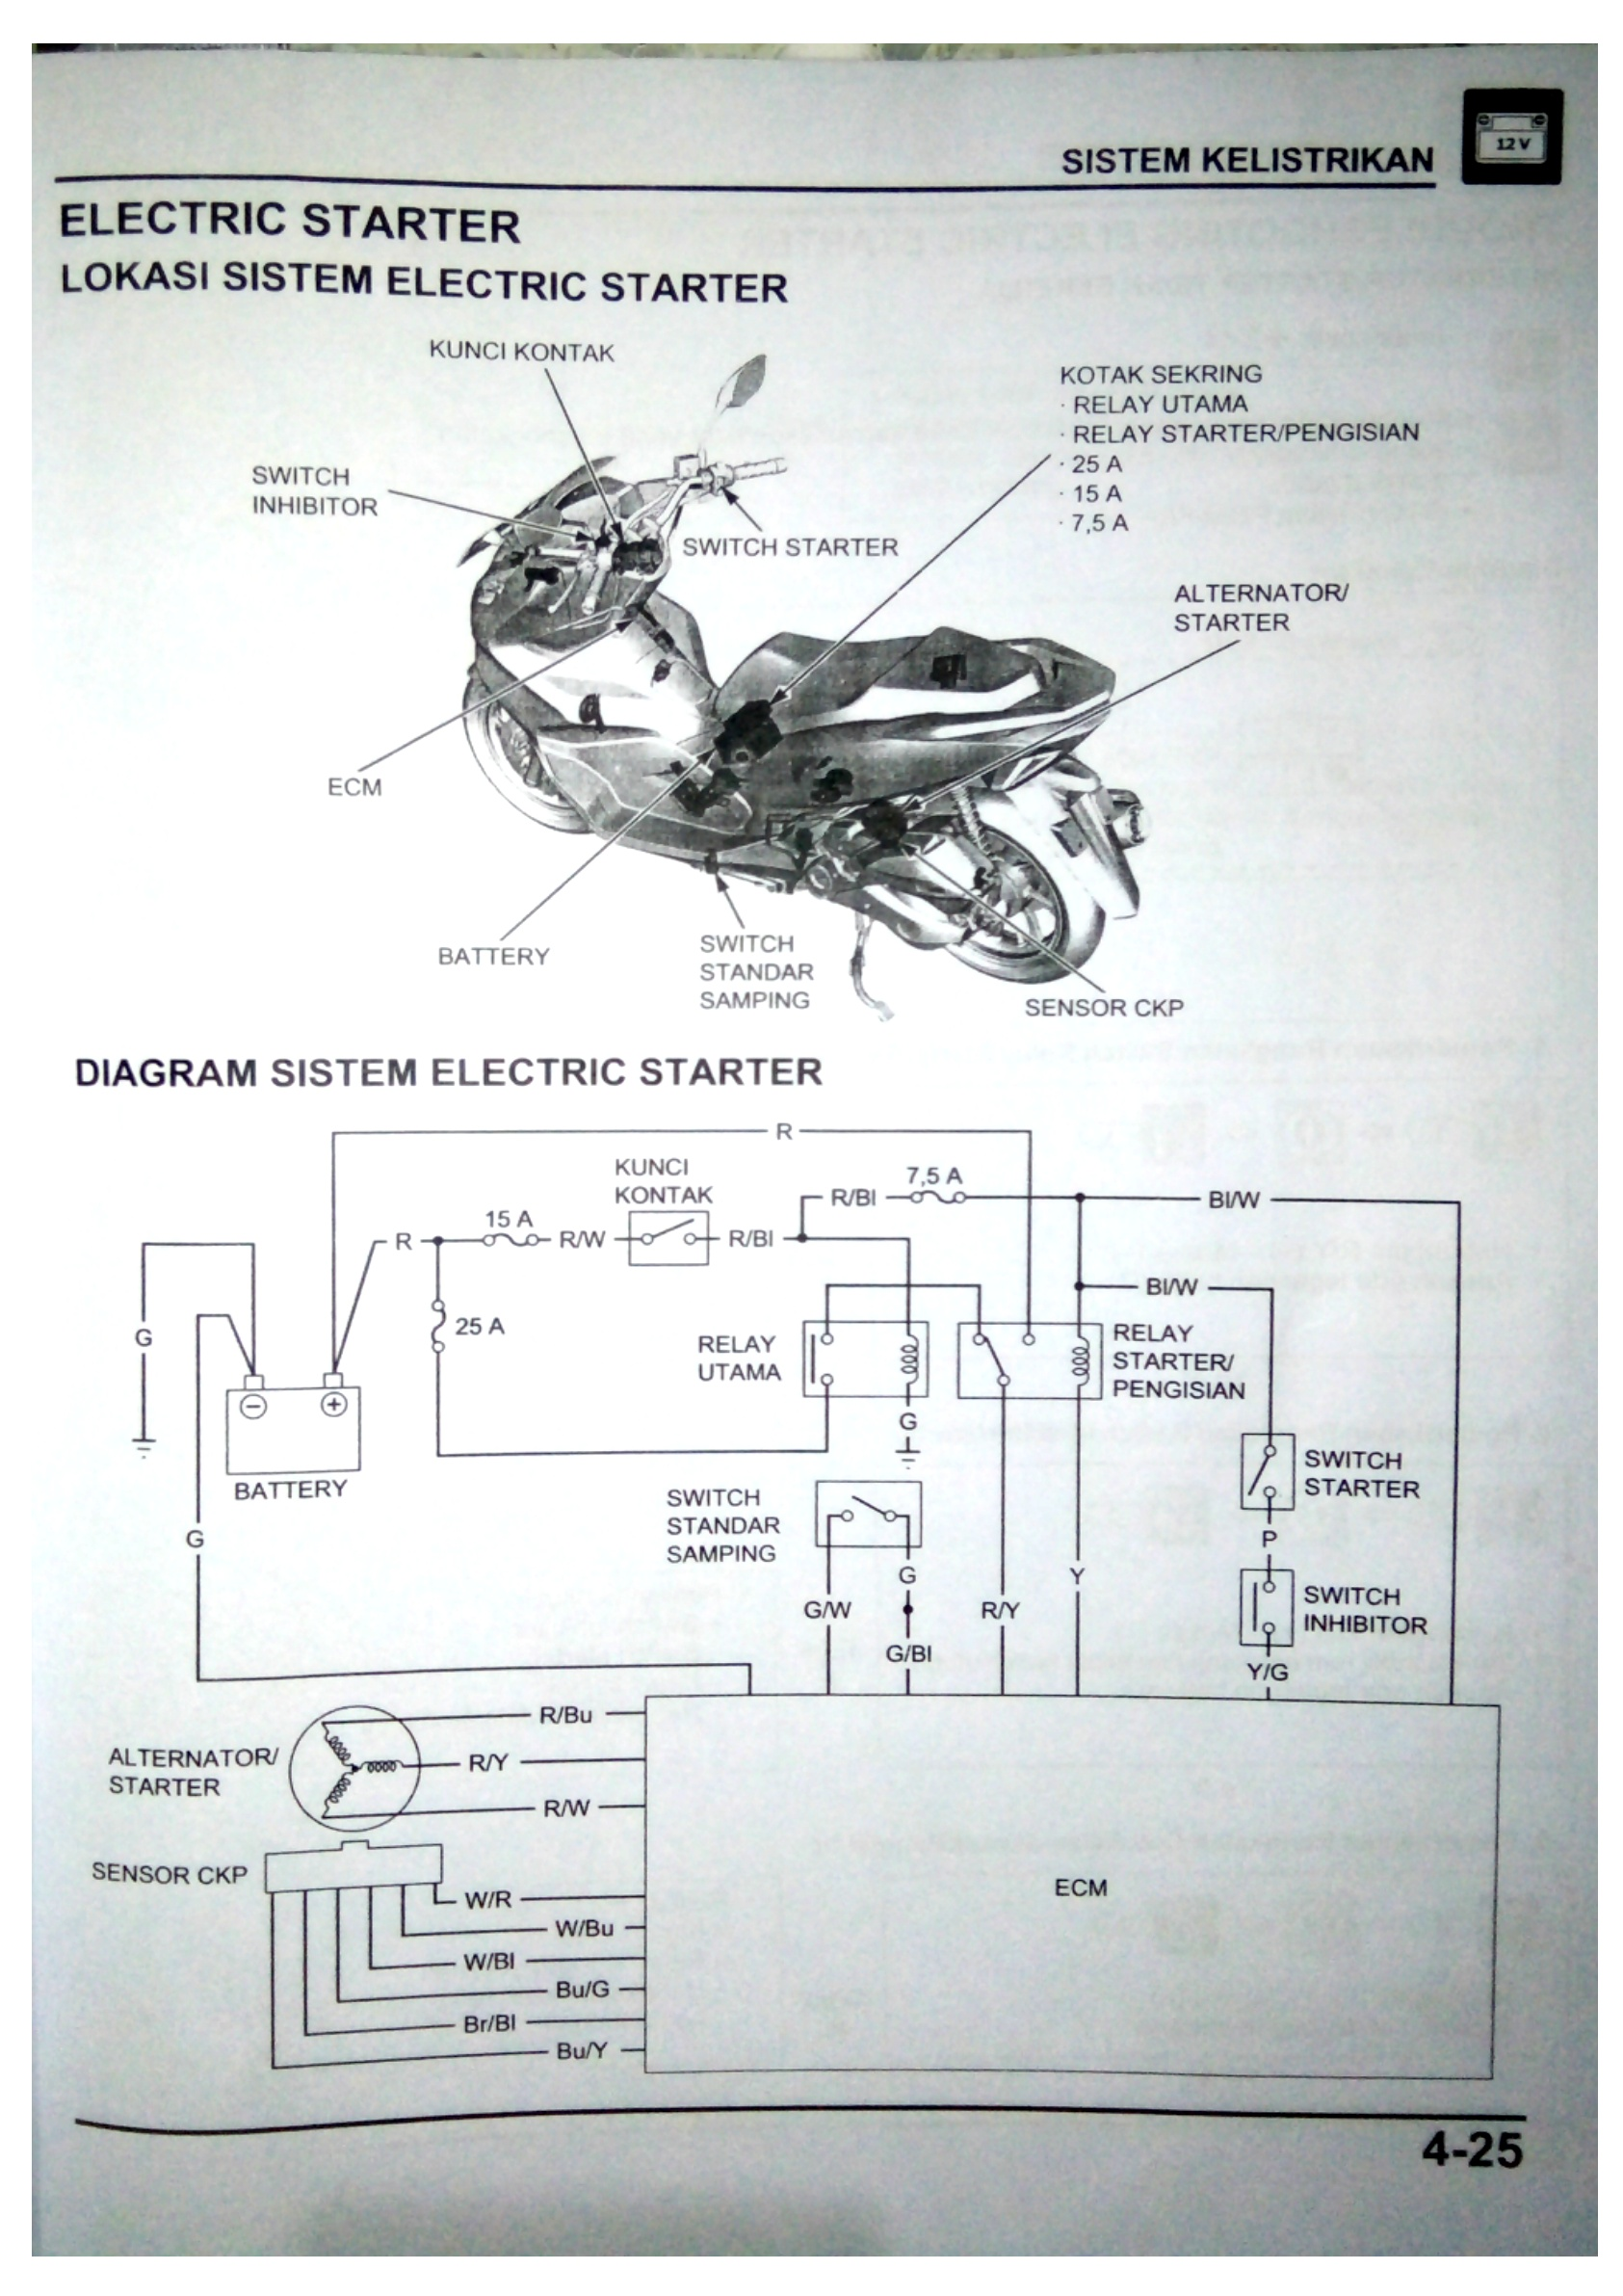 electric wiring system diagram honda new pcx 150 2018 gisix s blog wiring diagram honda pcx wiring diagram honda pcx [ 1685 x 2383 Pixel ]